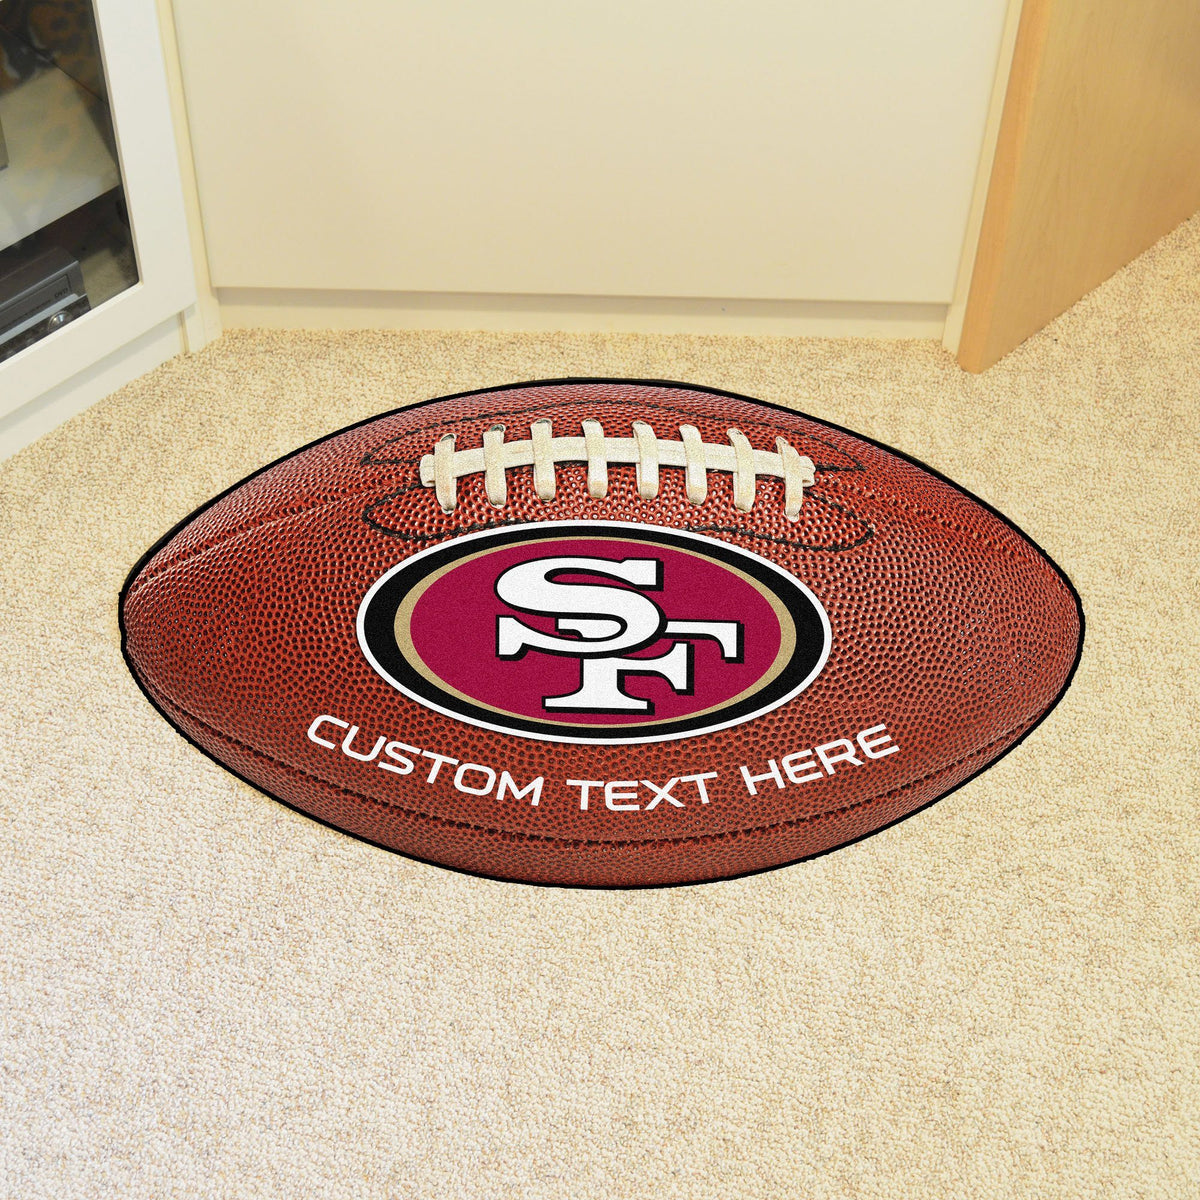 NFL Personalized Football Mat Personalized Football Mat Fan Mats San Francisco 49ers